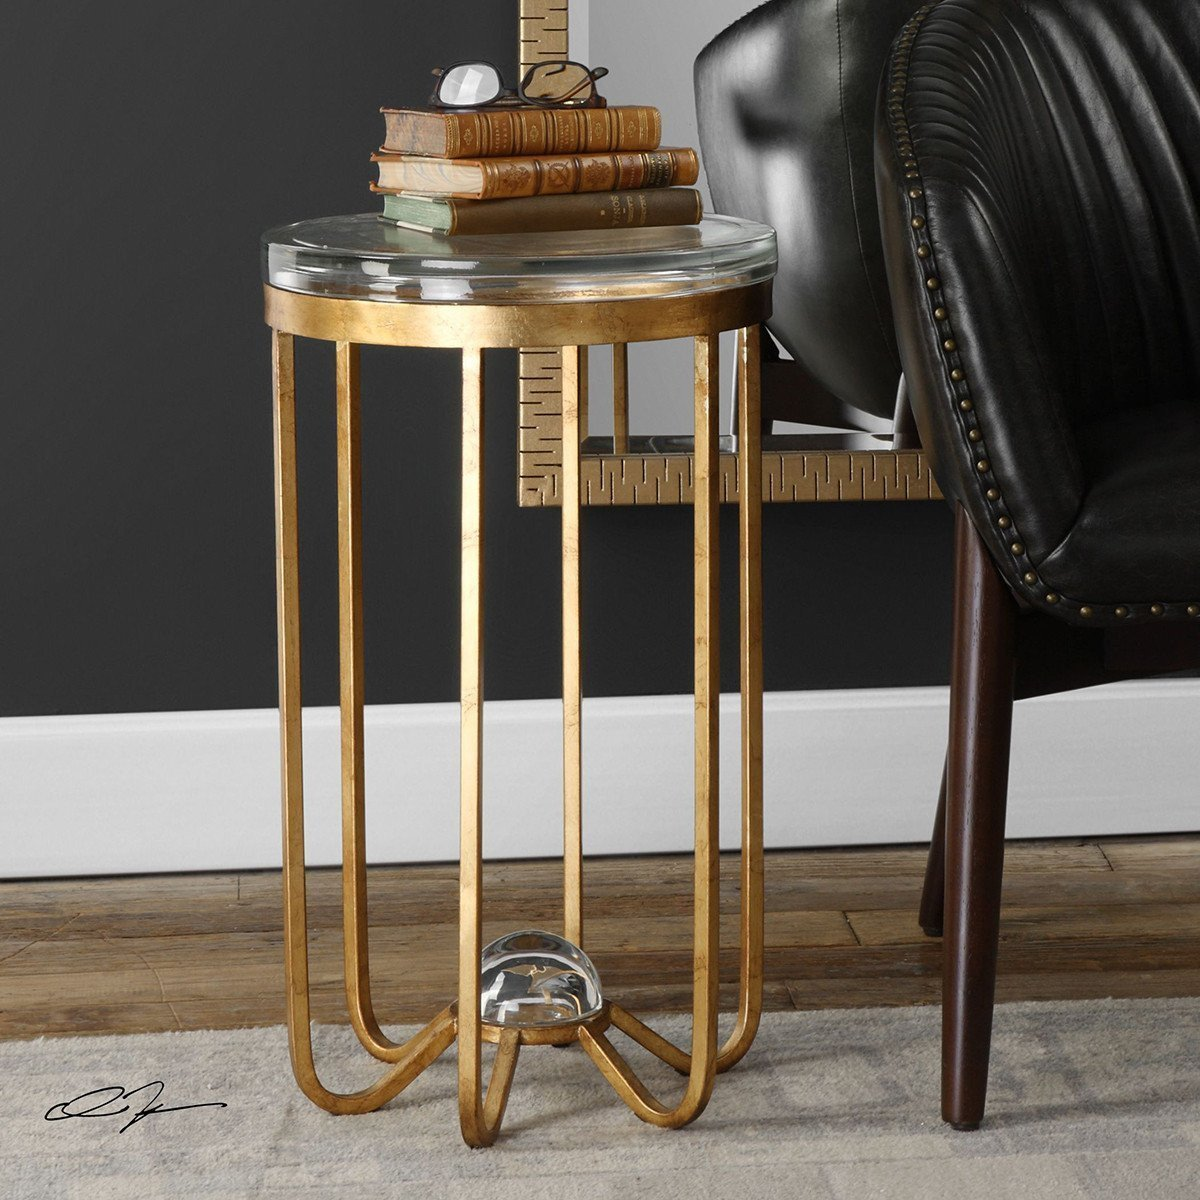 alltique boutique search engine uttermost dice red accent table allura gold home decor cottage style end tables wide nightstand large outdoor patio umbrella front entrance square